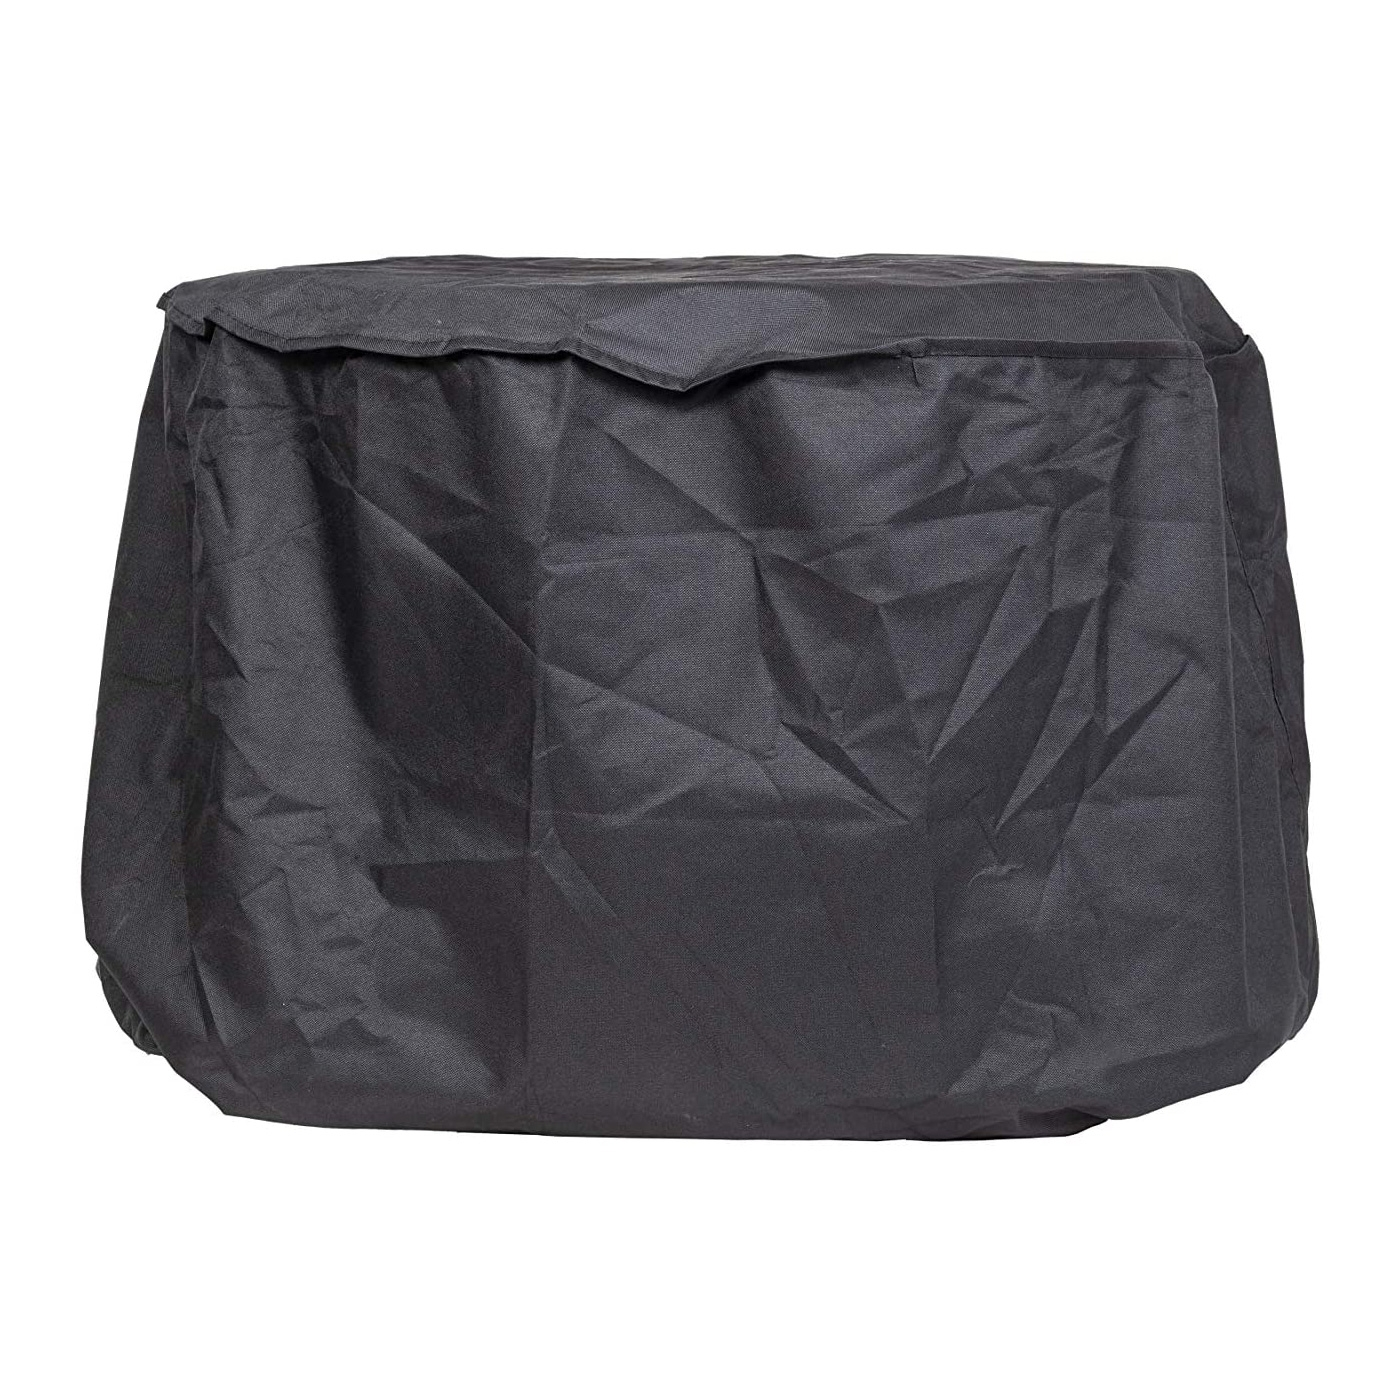 Click to view product details and reviews for Premium Large Fire Pit Cover.